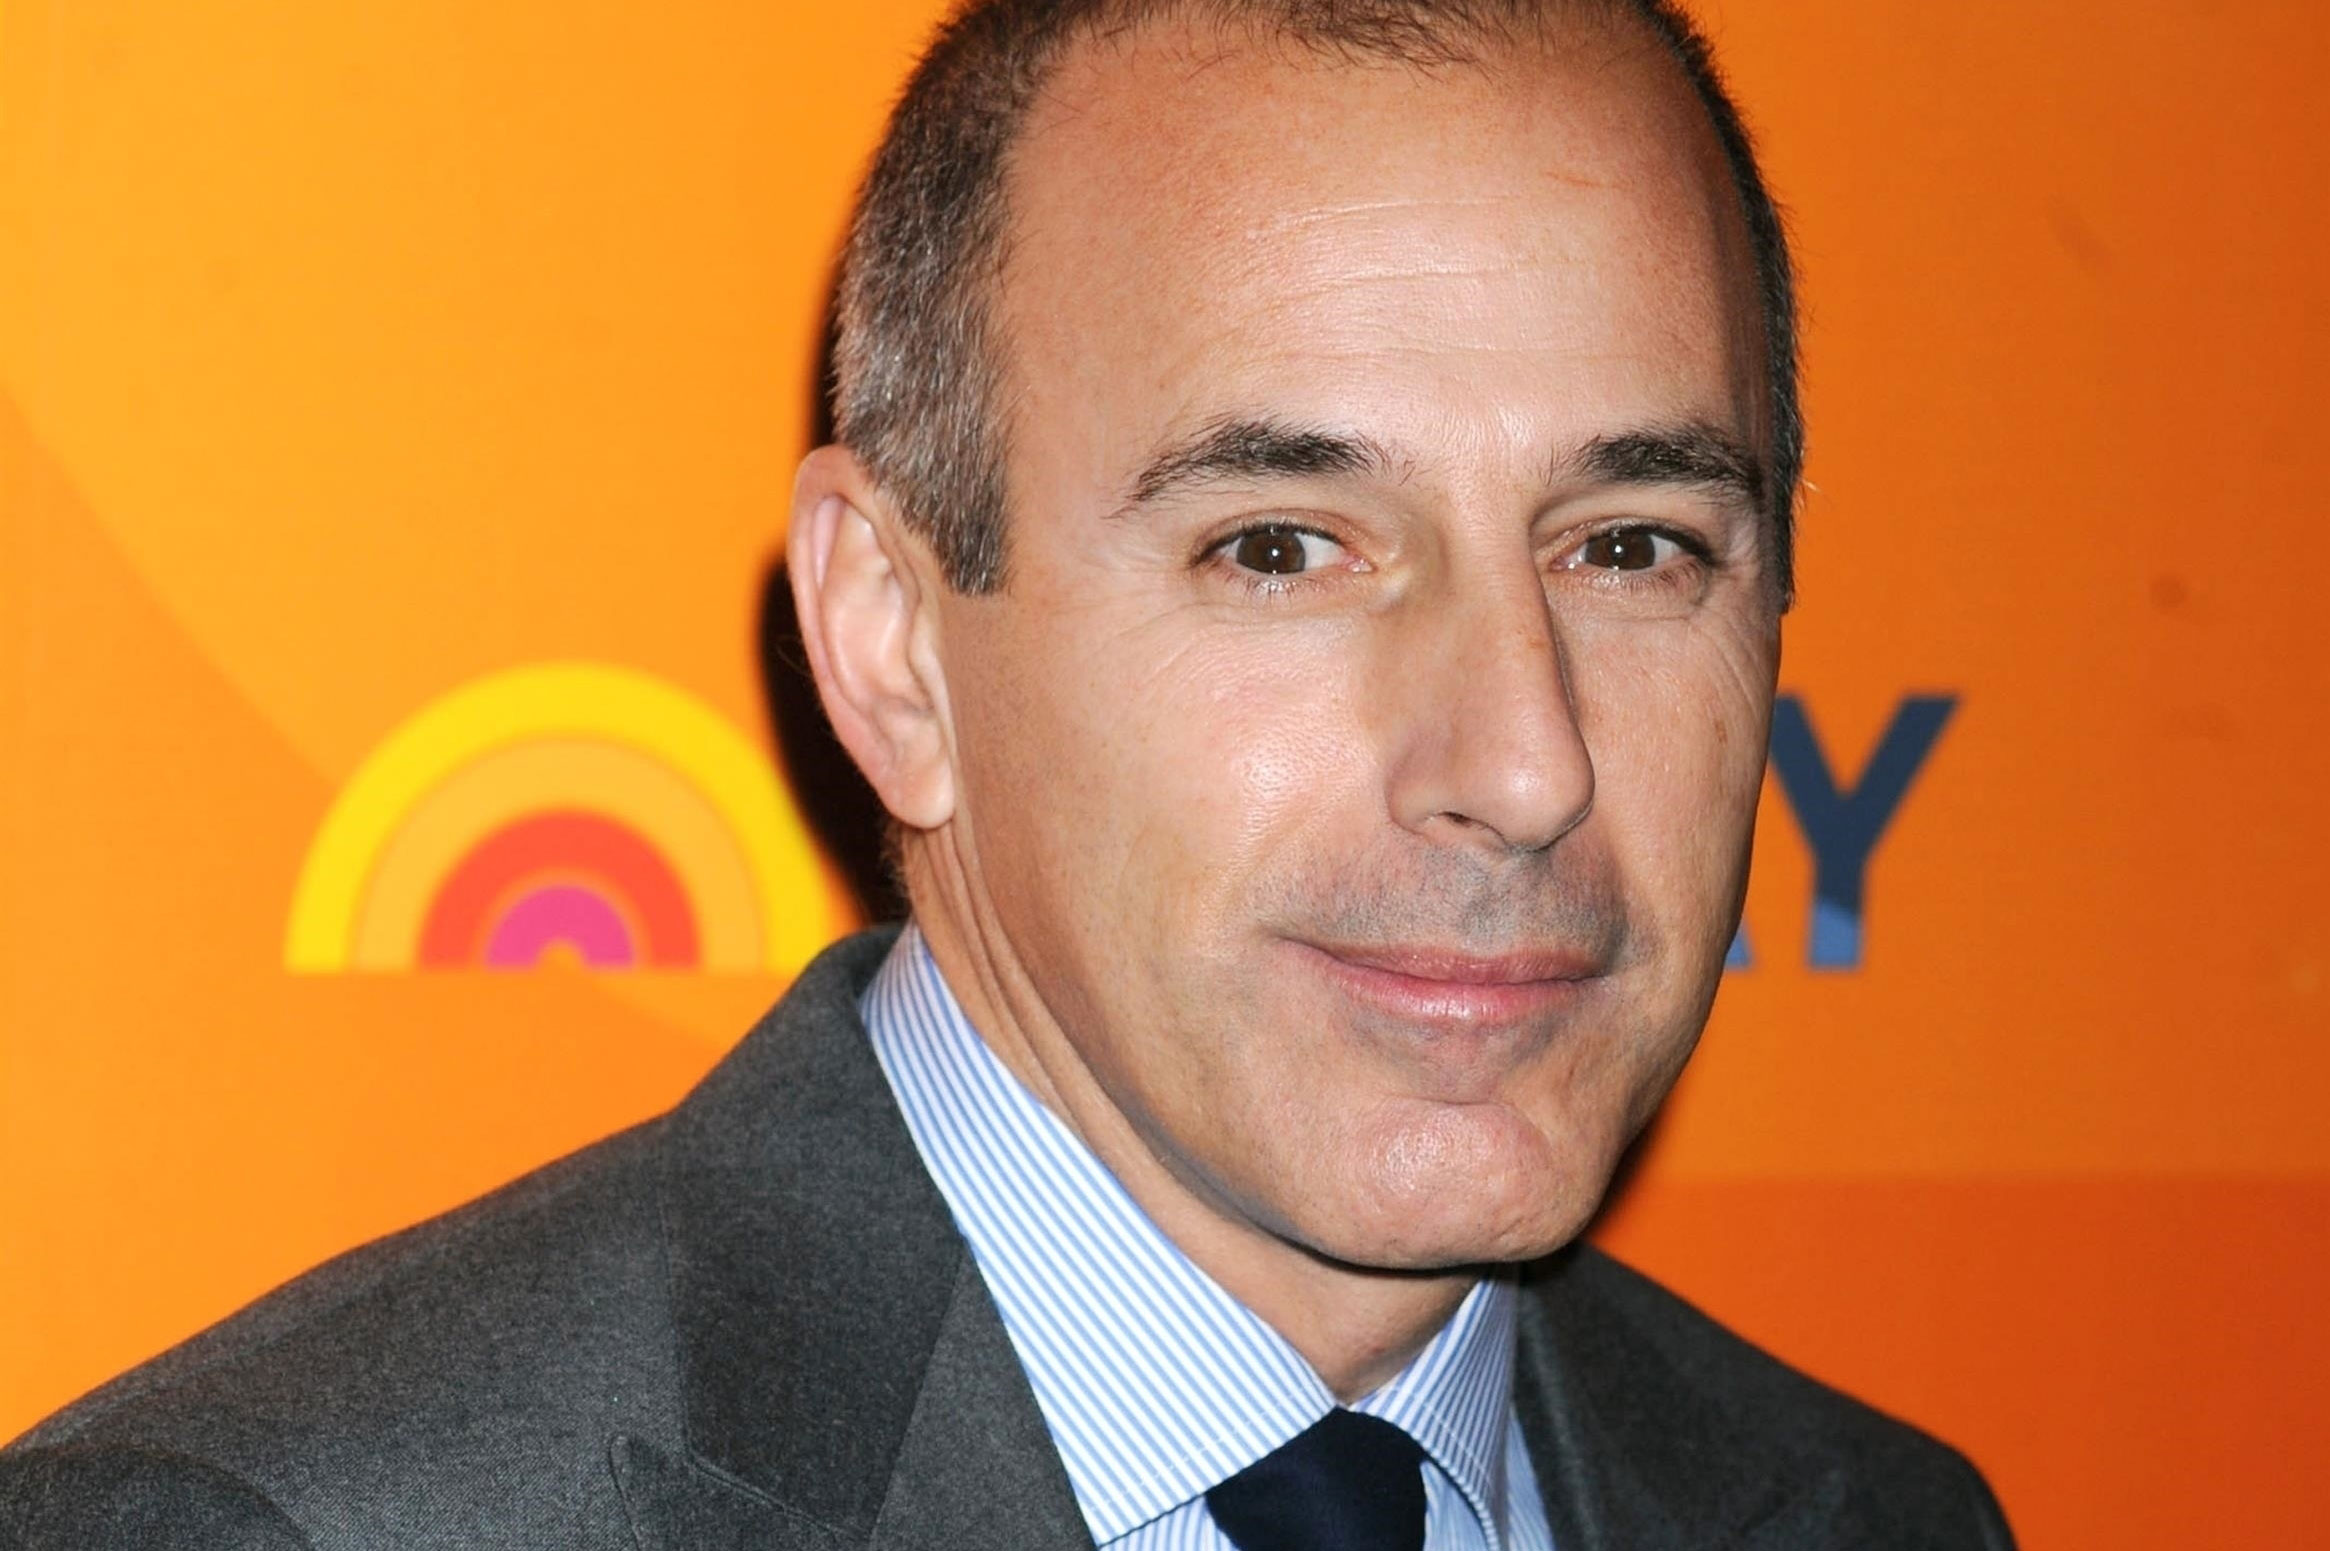 Matt lauer apologizes day nbc fired inappropriate sexual behavior feature